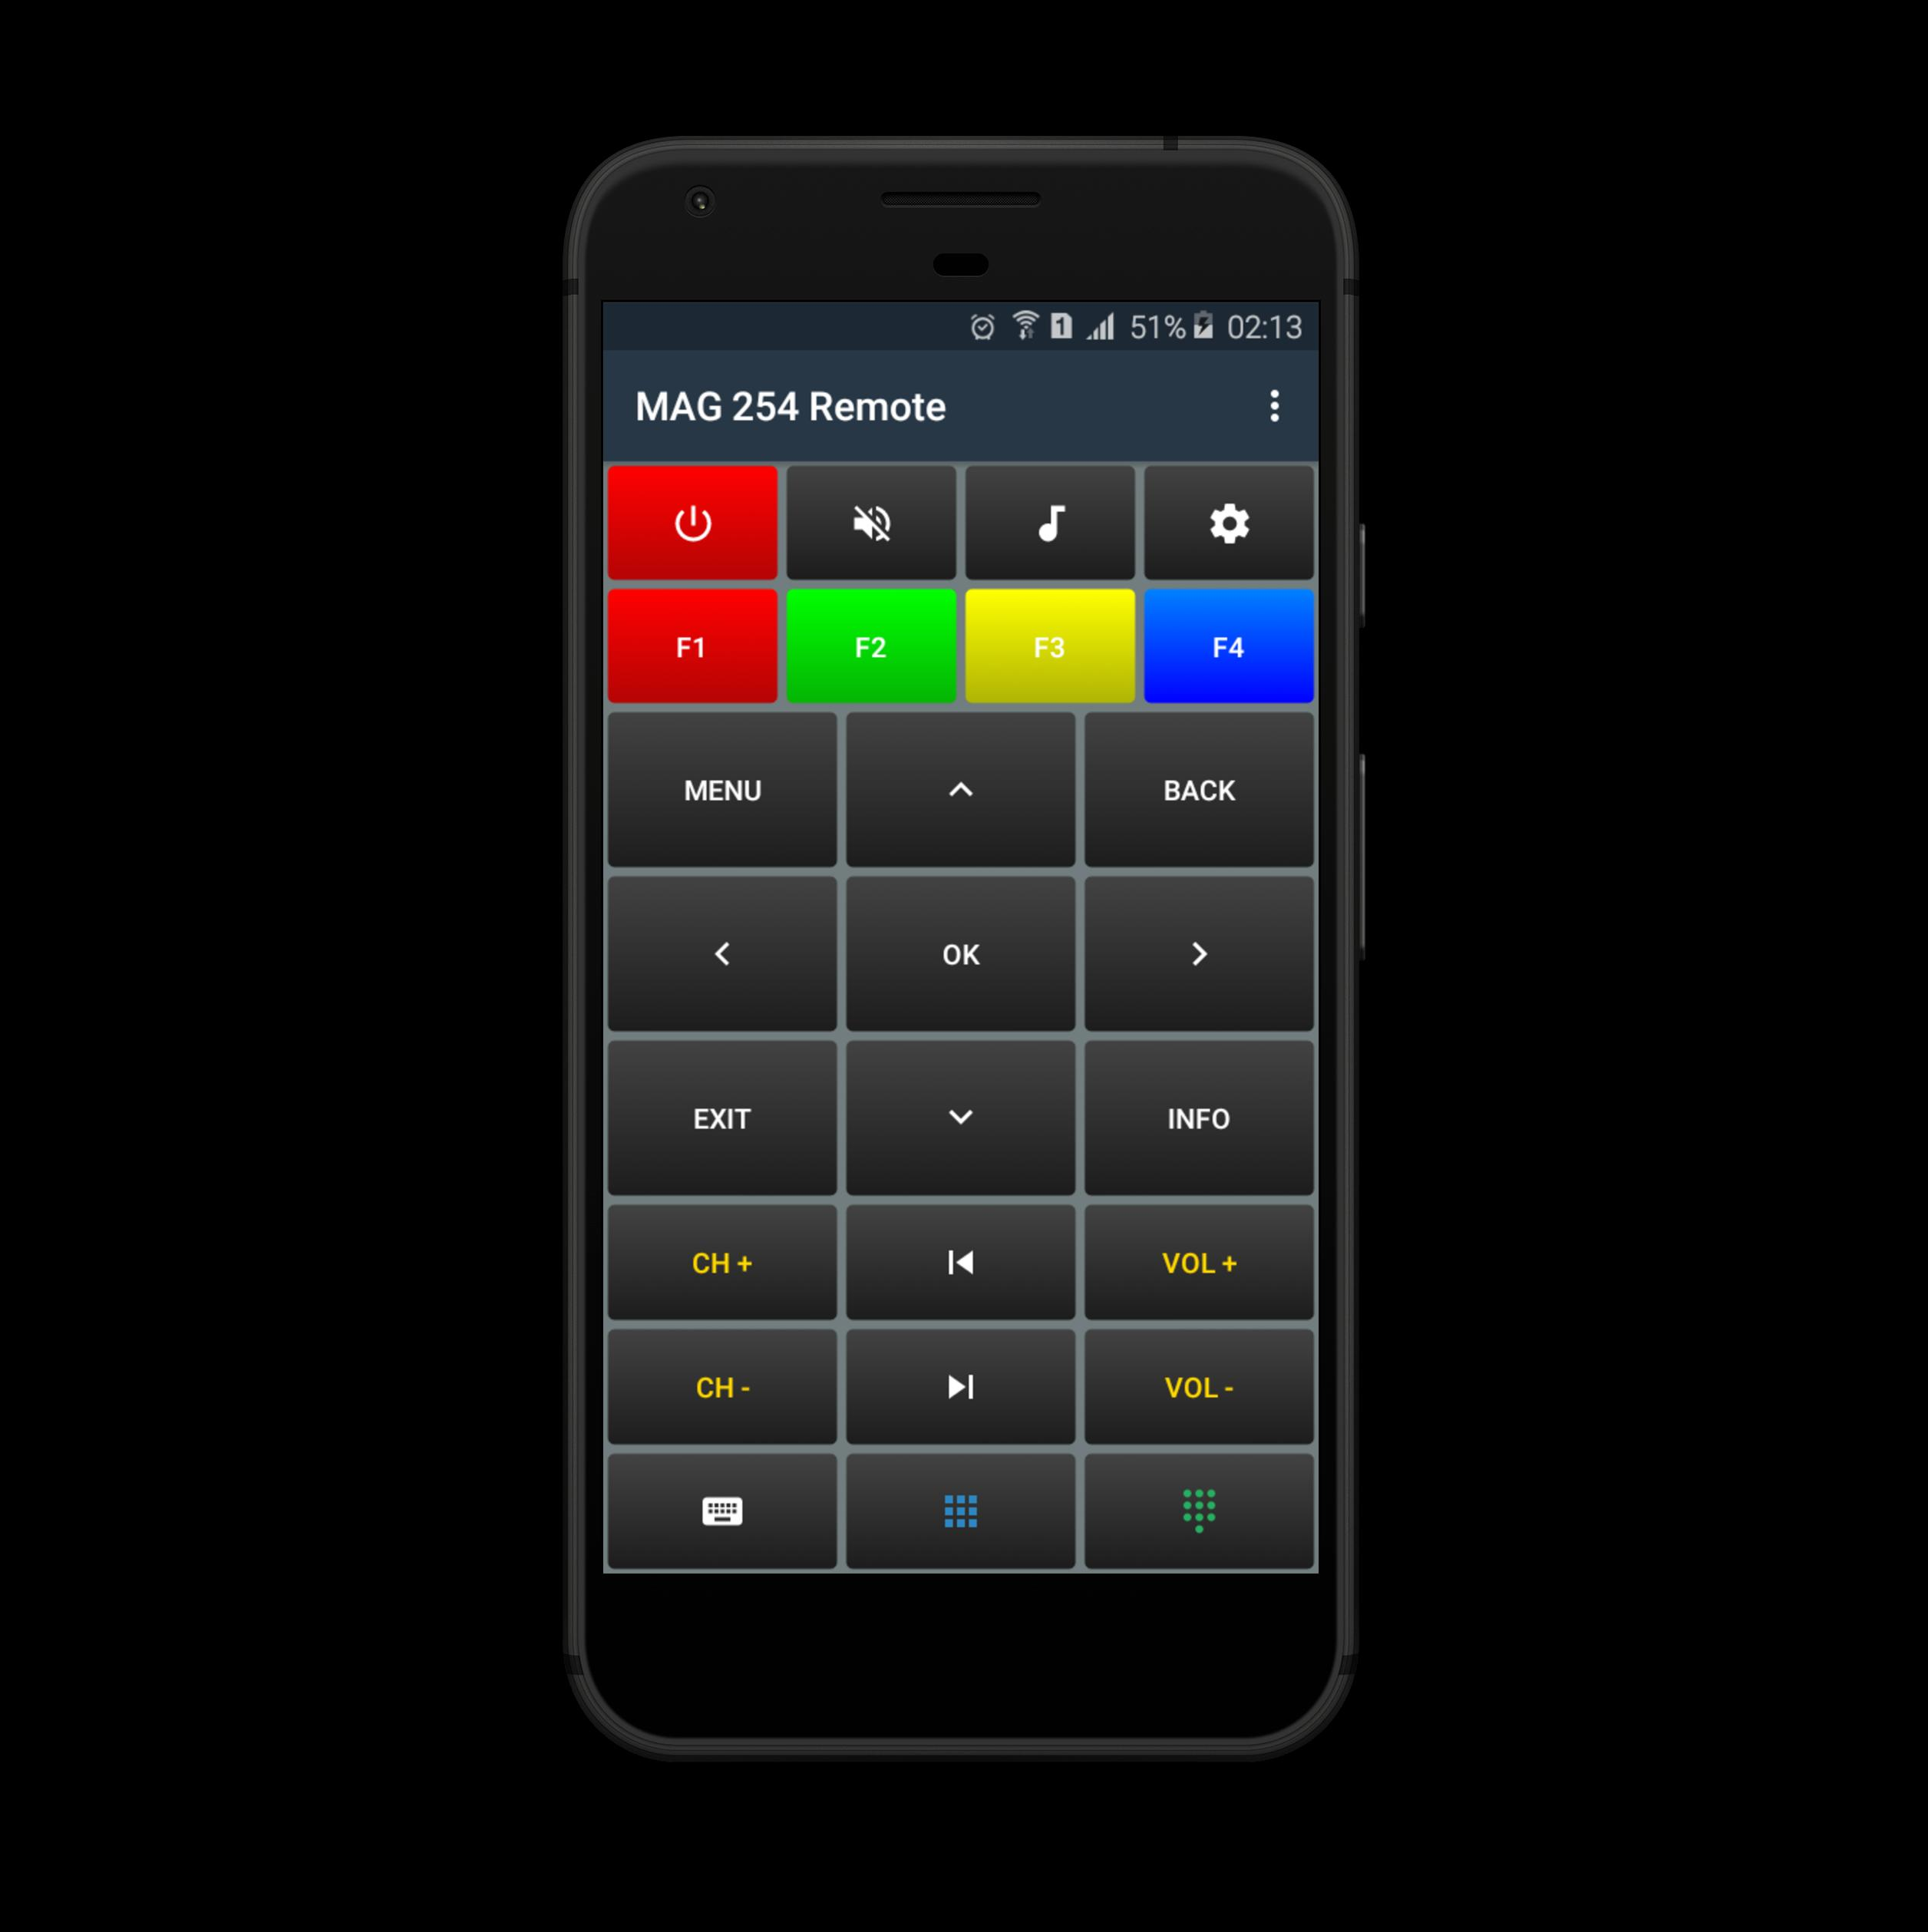 MAG 254 Remote for Android - APK Download